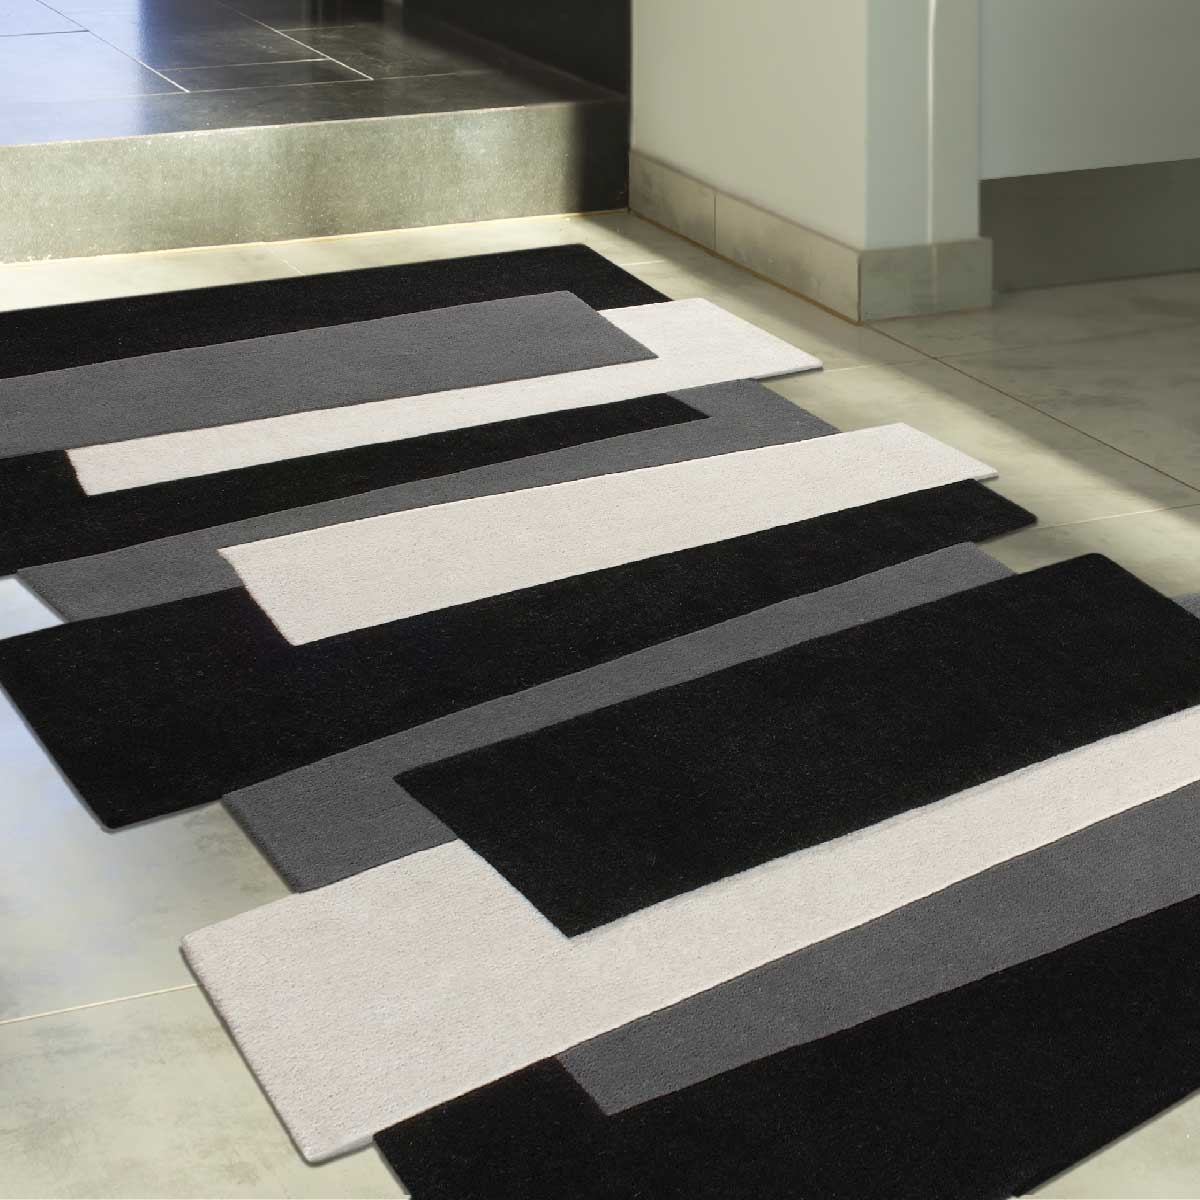 tapis salle de bain original with tapis salle de bain. Black Bedroom Furniture Sets. Home Design Ideas